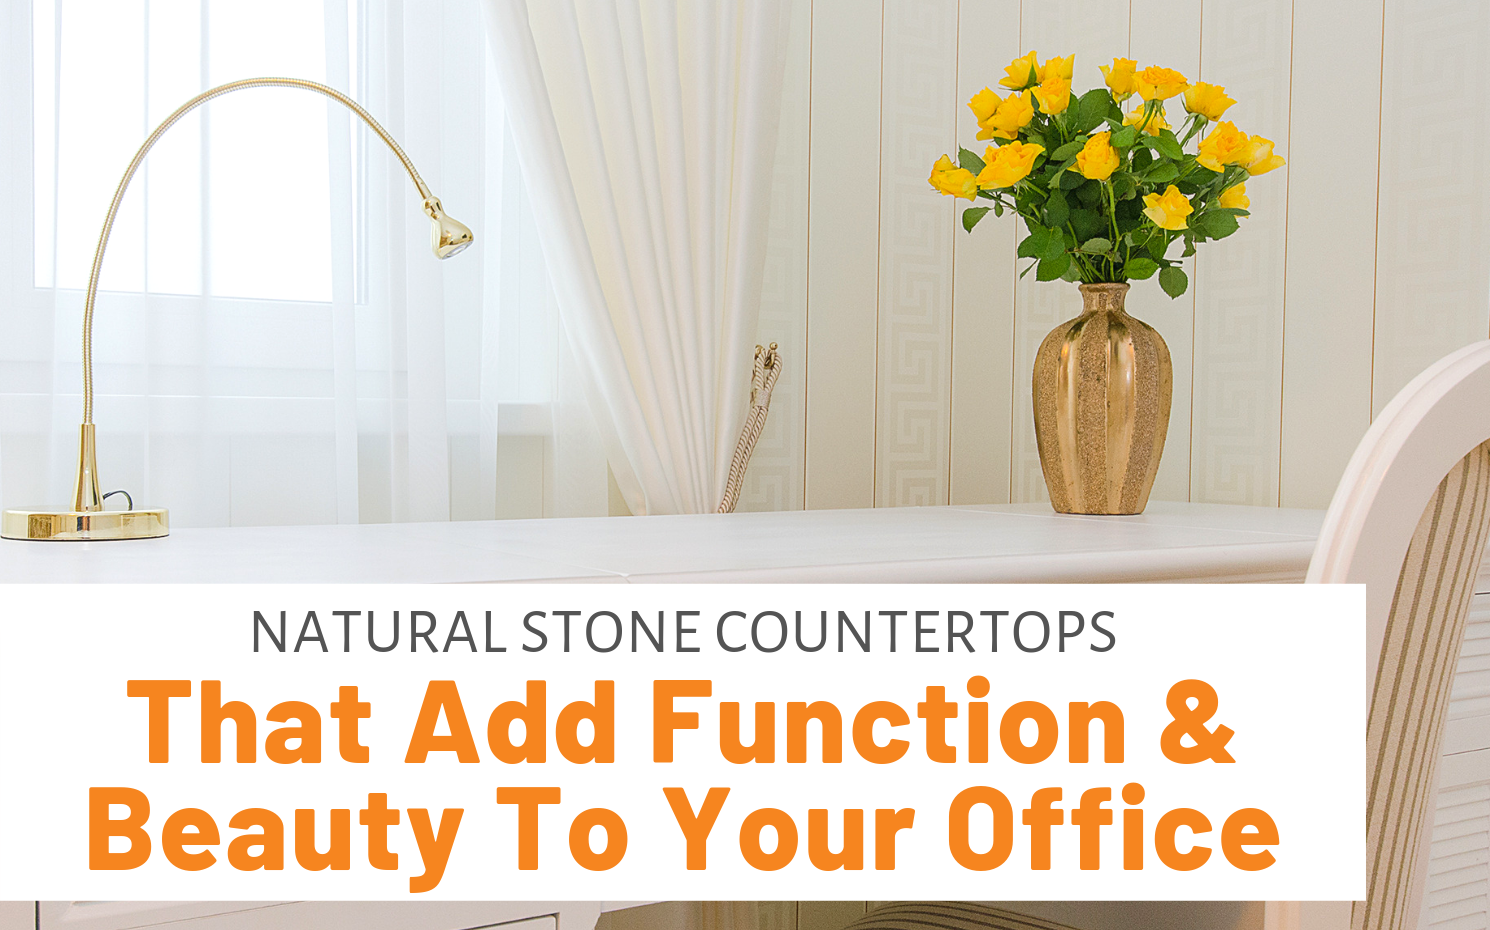 """Featured image for """"Natural Stone Countertops That Add Function & Beauty To Your Office"""" blog post"""